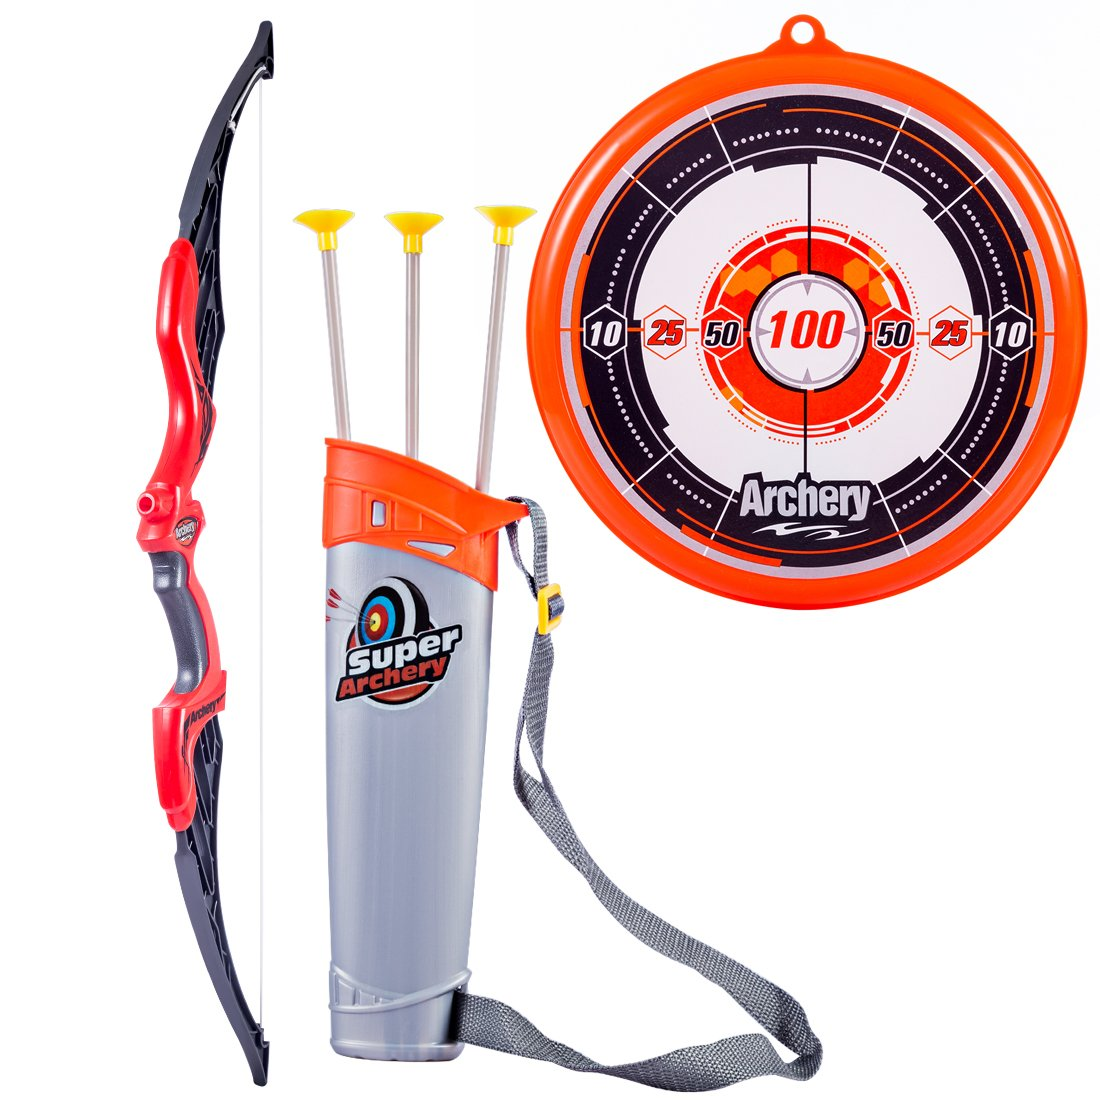 ANNA SHOP Bow and Arrow Set for Kids Toy Archery Set with Target Soft Sucker Arrow with Holder